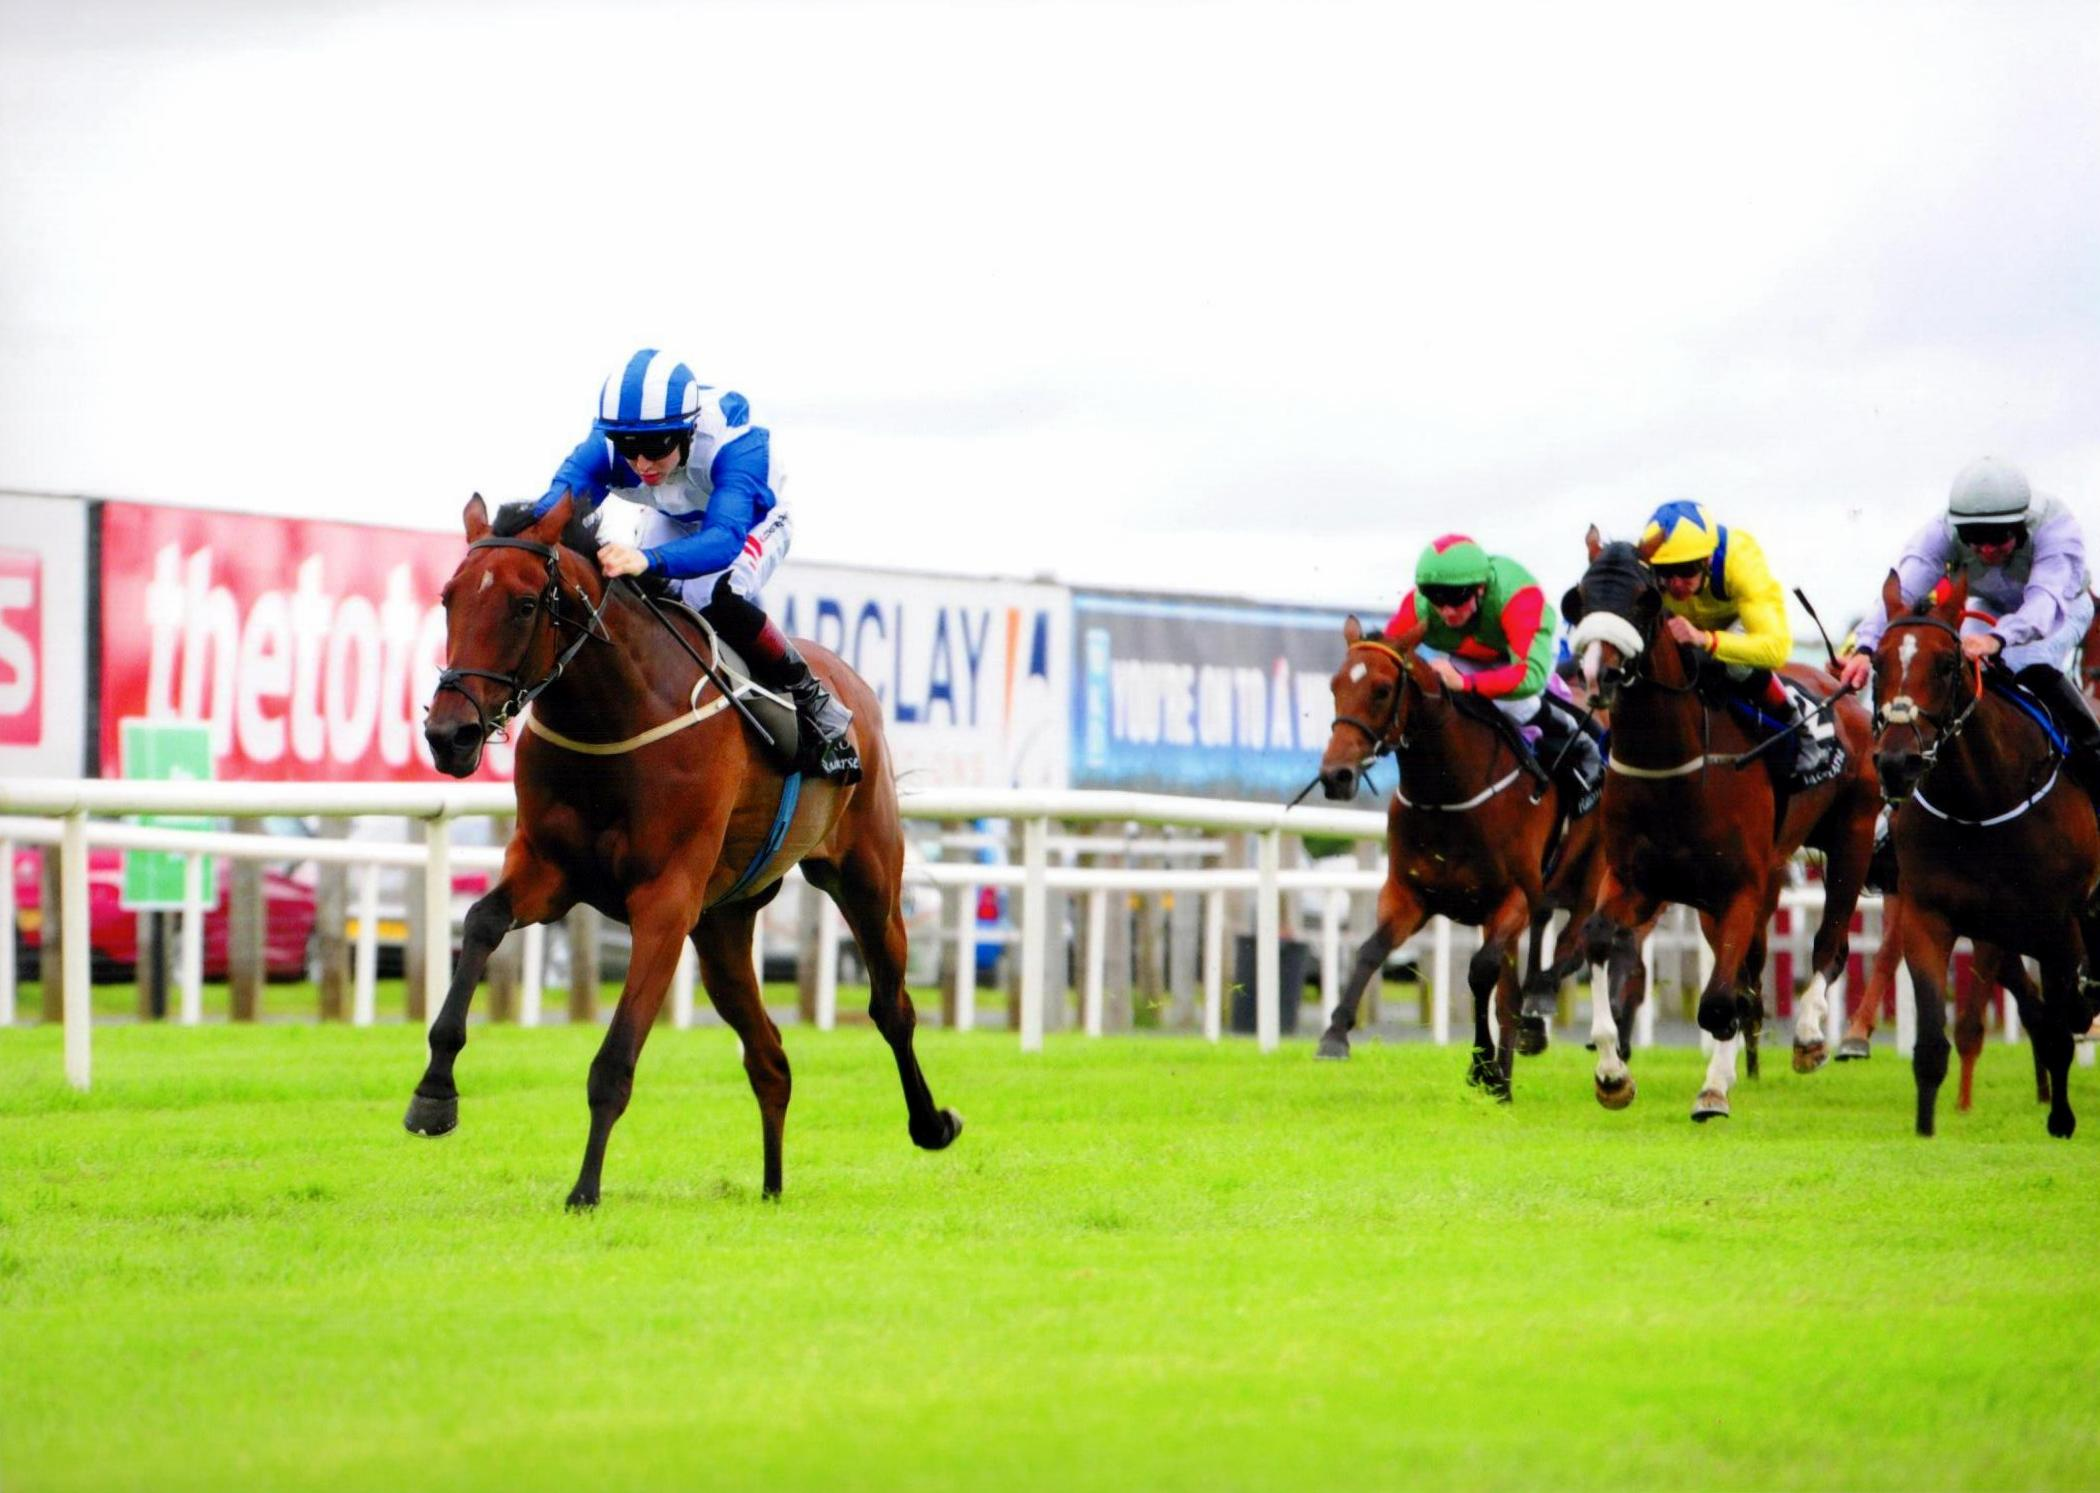 DANCING WAVES wins her maiden in fine style at Down Royal under Colin Keane 22nd July 2016